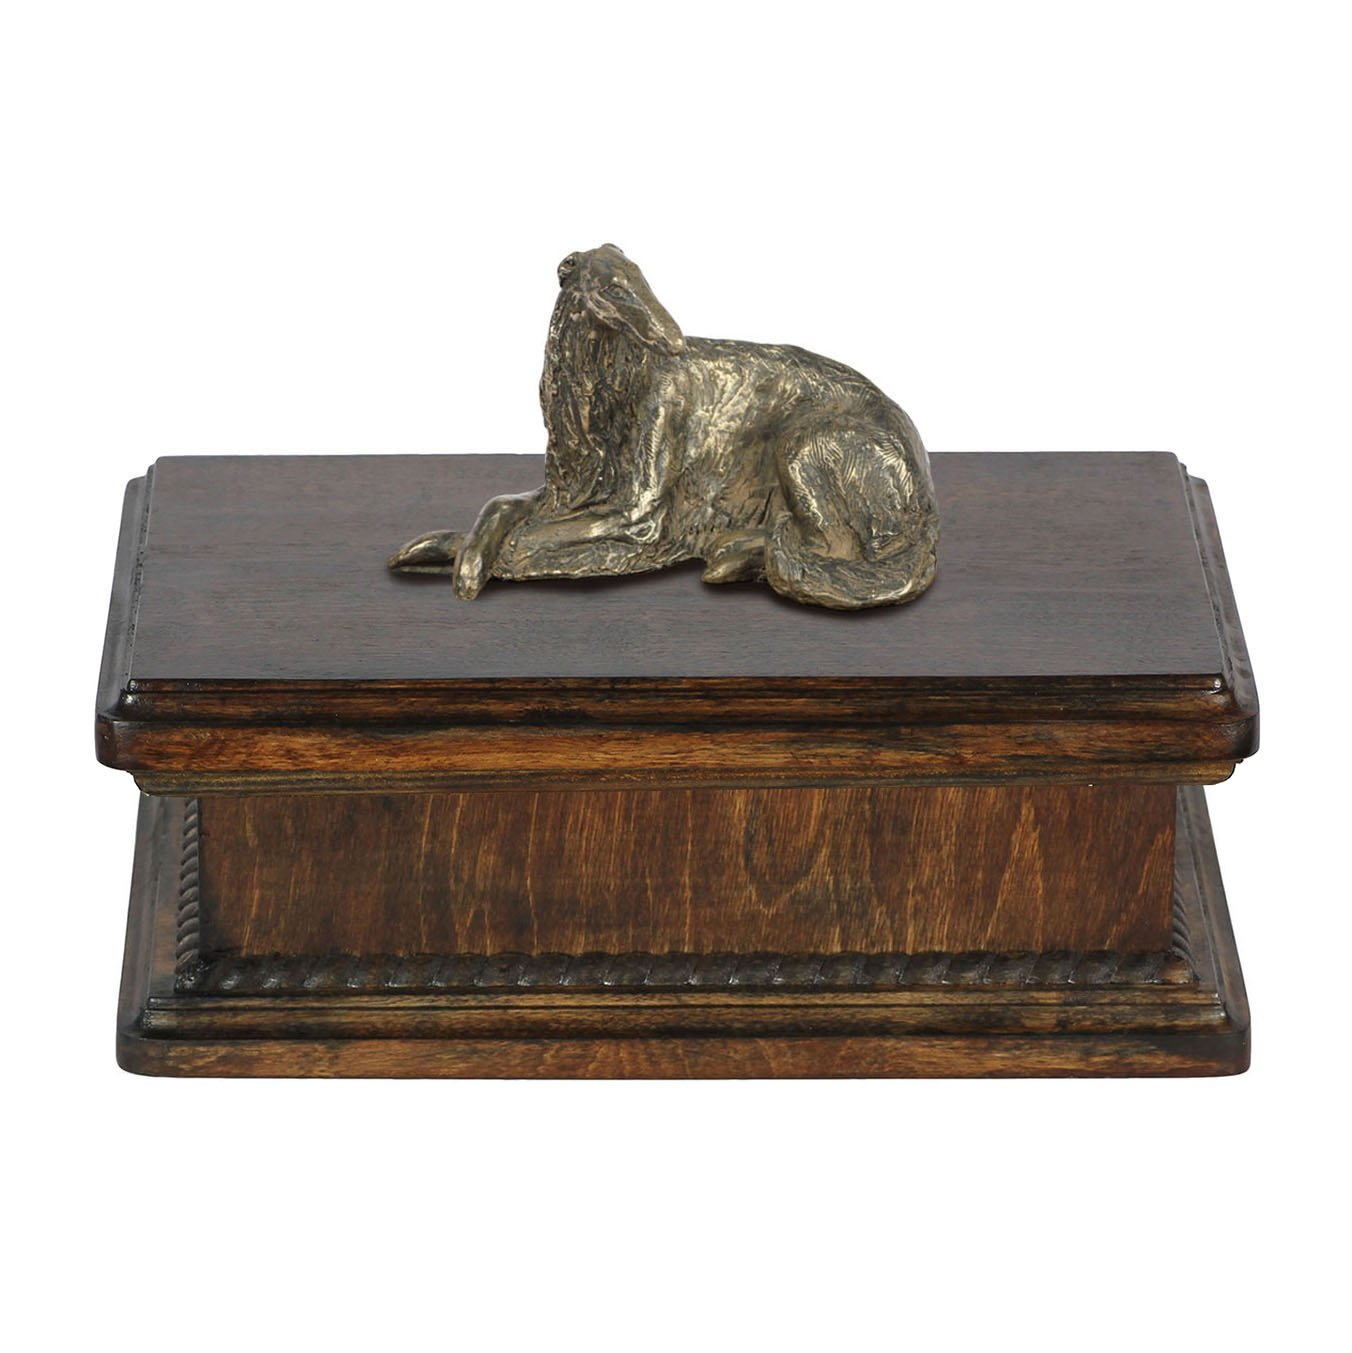 Borzoi (lying), memorial, urn for dog's ashes, with dog statue, exclusive, ArtDog